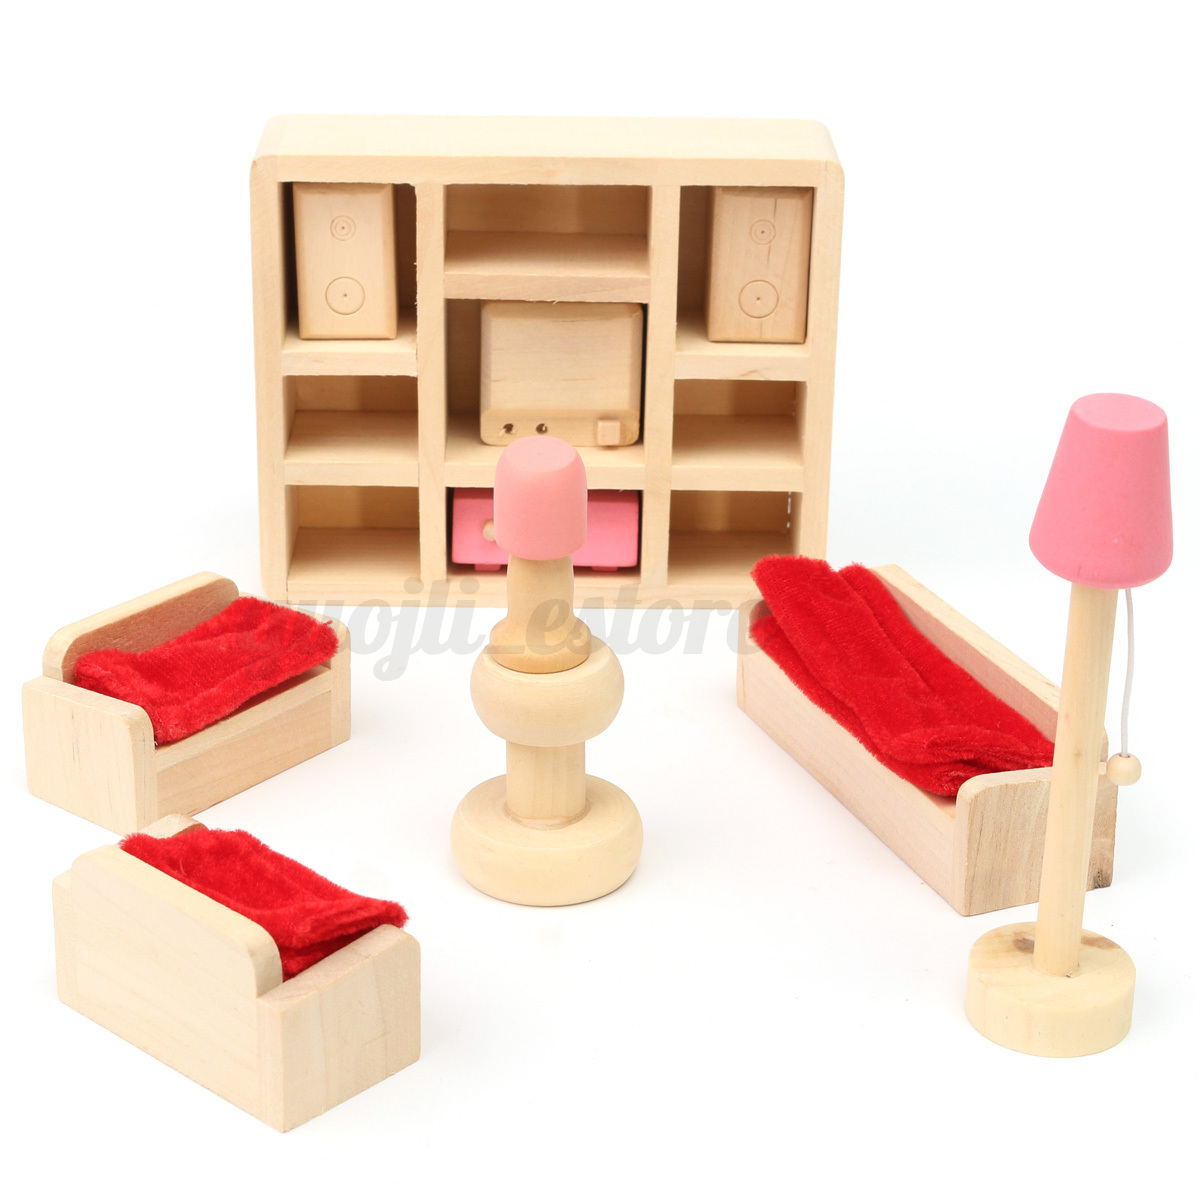 Wooden Furniture 6 Room Set Dolls House Family Miniature For Kids Children Toy Ebay